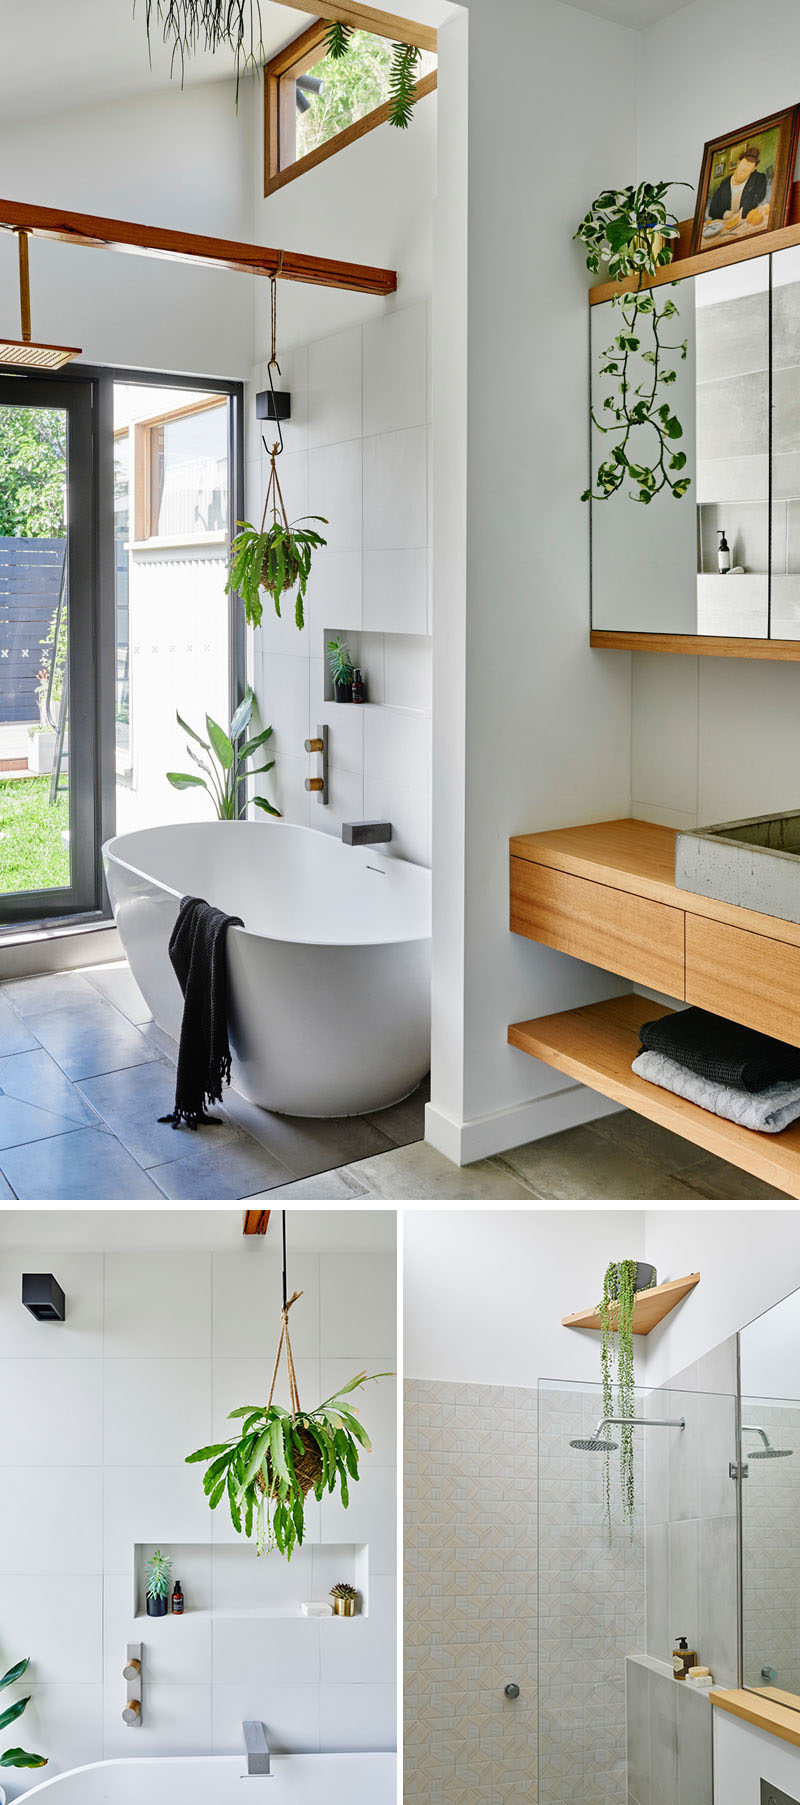 In this modern updated bathroom there's a freestanding bathtub with views of the backyard, while wood elements and plants add a natural touch to the space. #ModernBathroom #WhiteAndWood